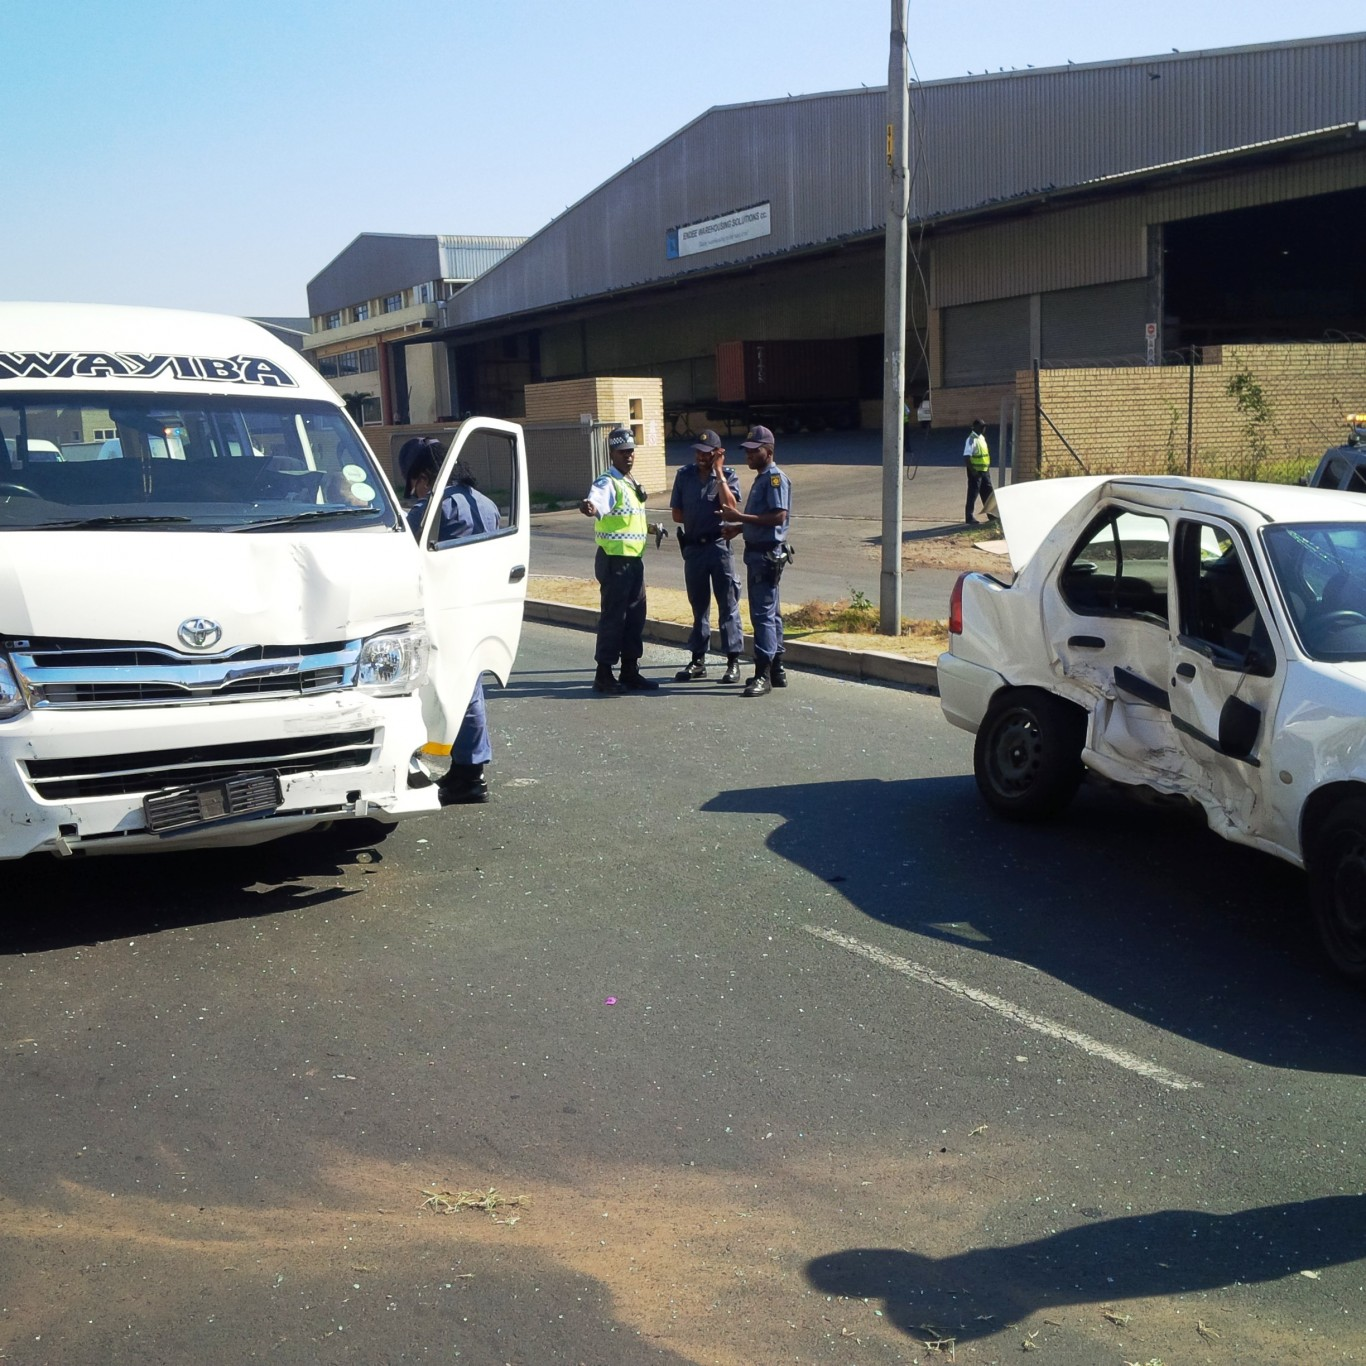 Taxi accident leaves 9 injured on South Coast Road near